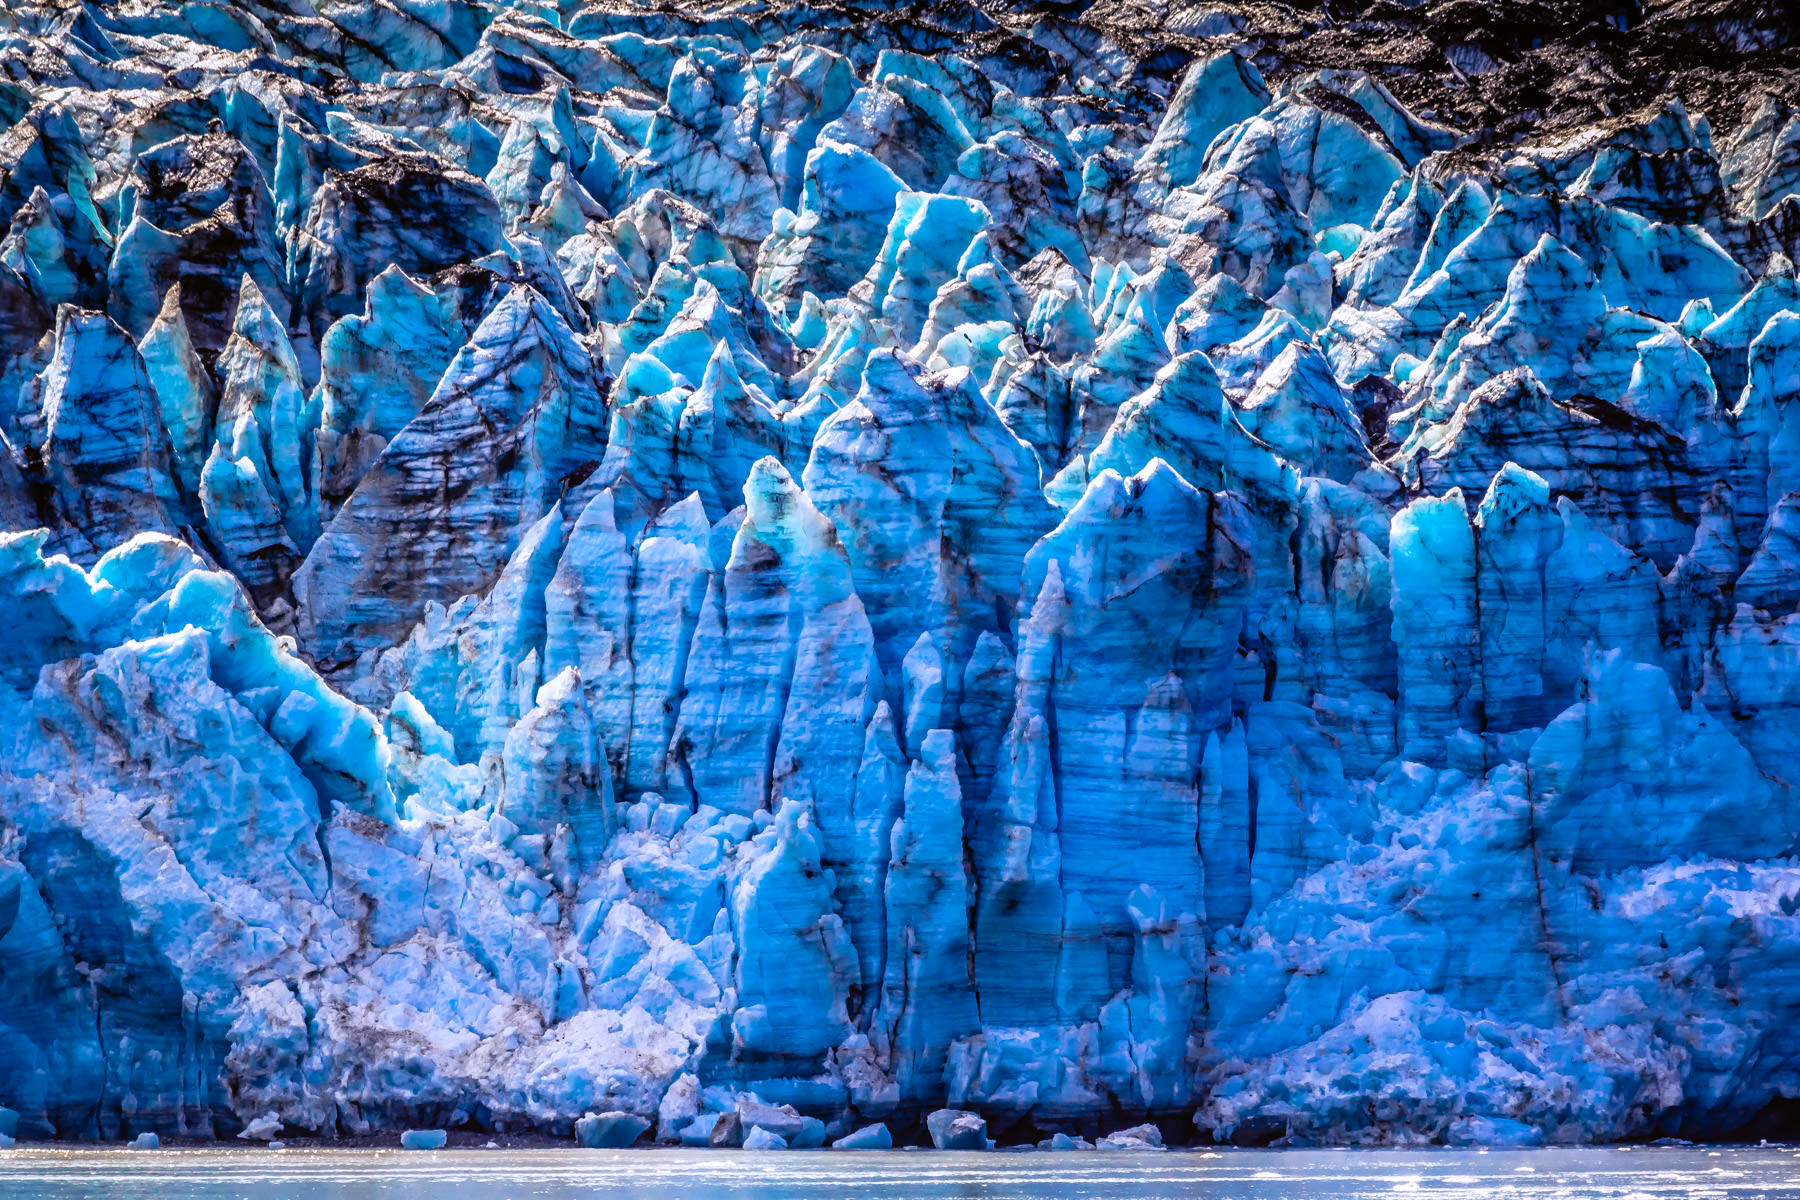 The icy face of Alaska's Margerie Glacier rises over 250 feet into the air at Glacier Bay National Park.